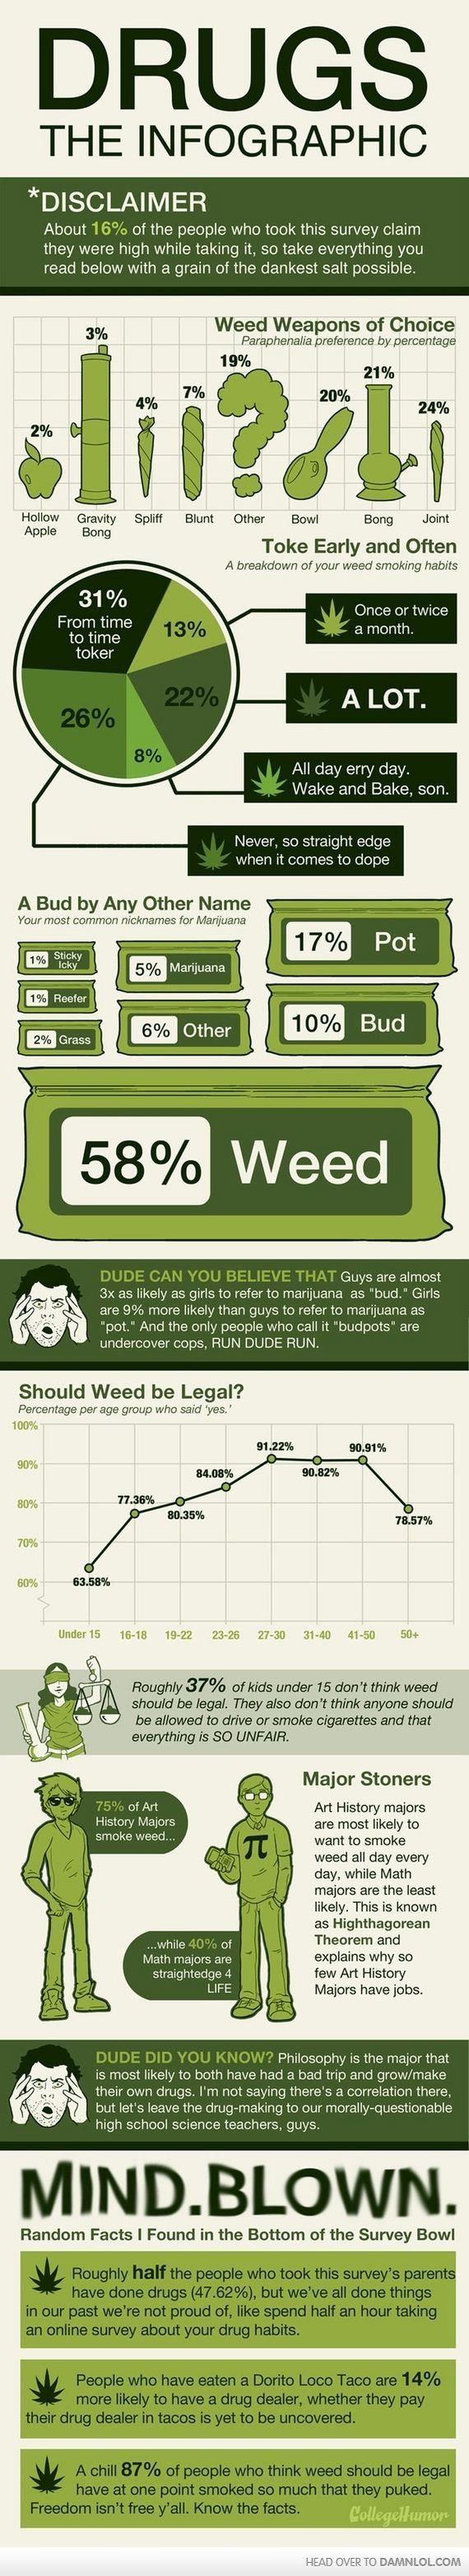 Design Pros And Cons Of Weed 20 best pro marijuana images on pinterest cannabis medical facts about weed infographic is one of the infographics created in lifestyle category check out w